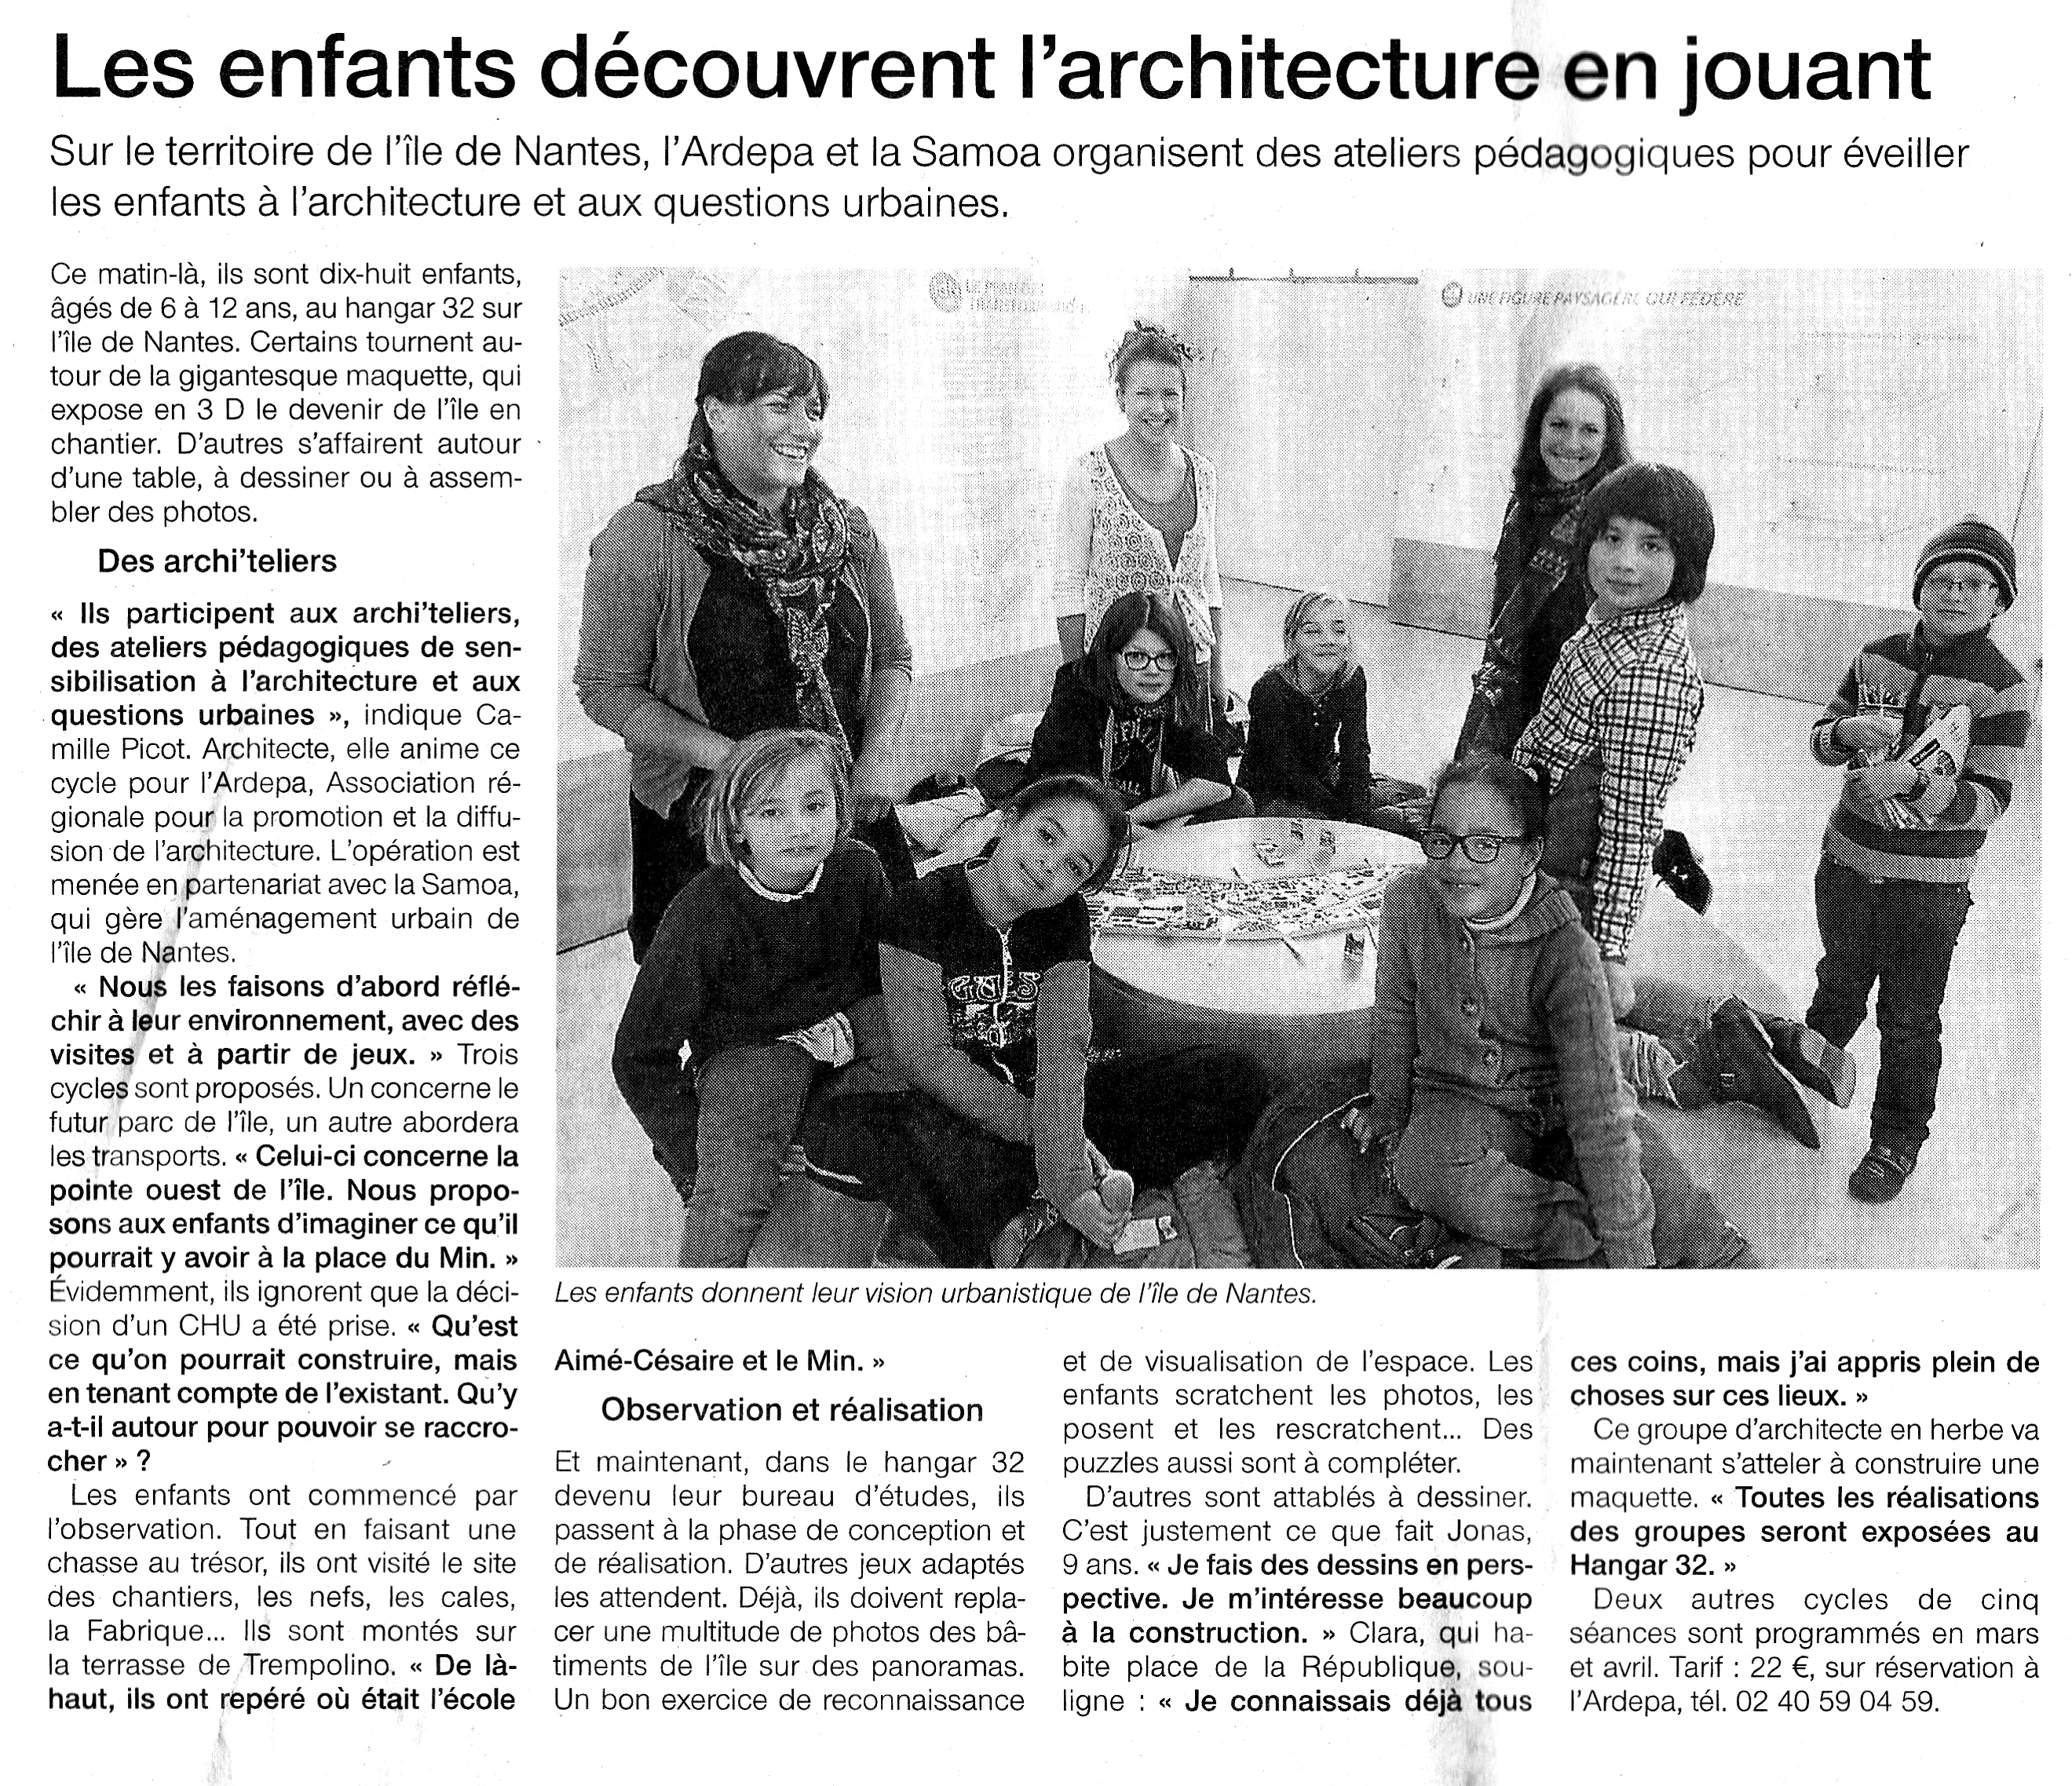 ardepa archi'teliers OuestFrance 13/11/2013